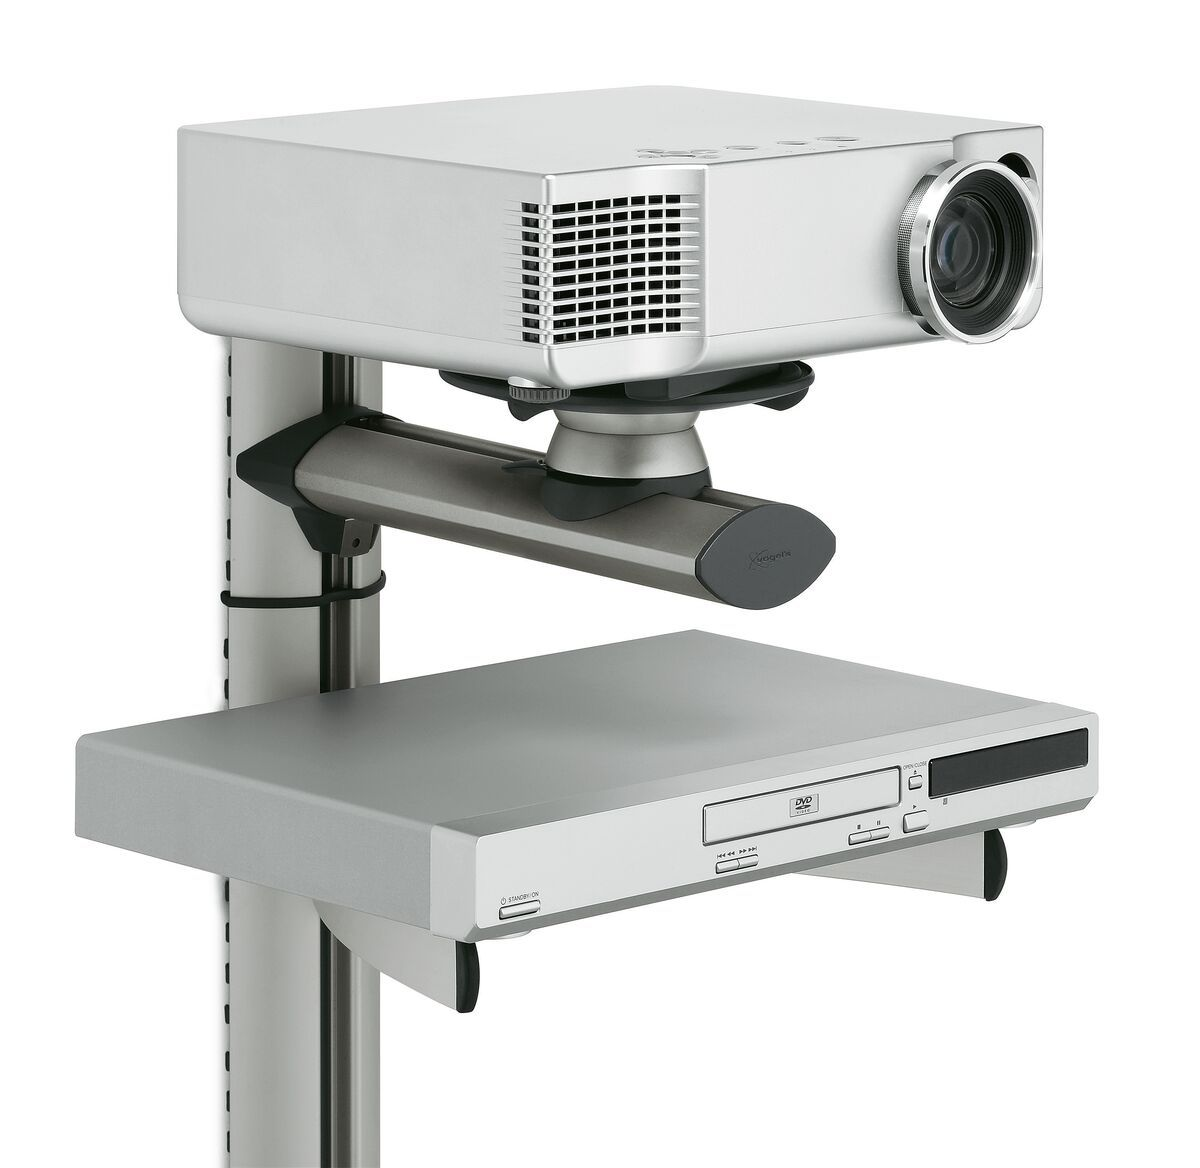 Vogel's EPW 6565 Projector Wall Mount - Max. weight load: 10 - Max. weight load: Application